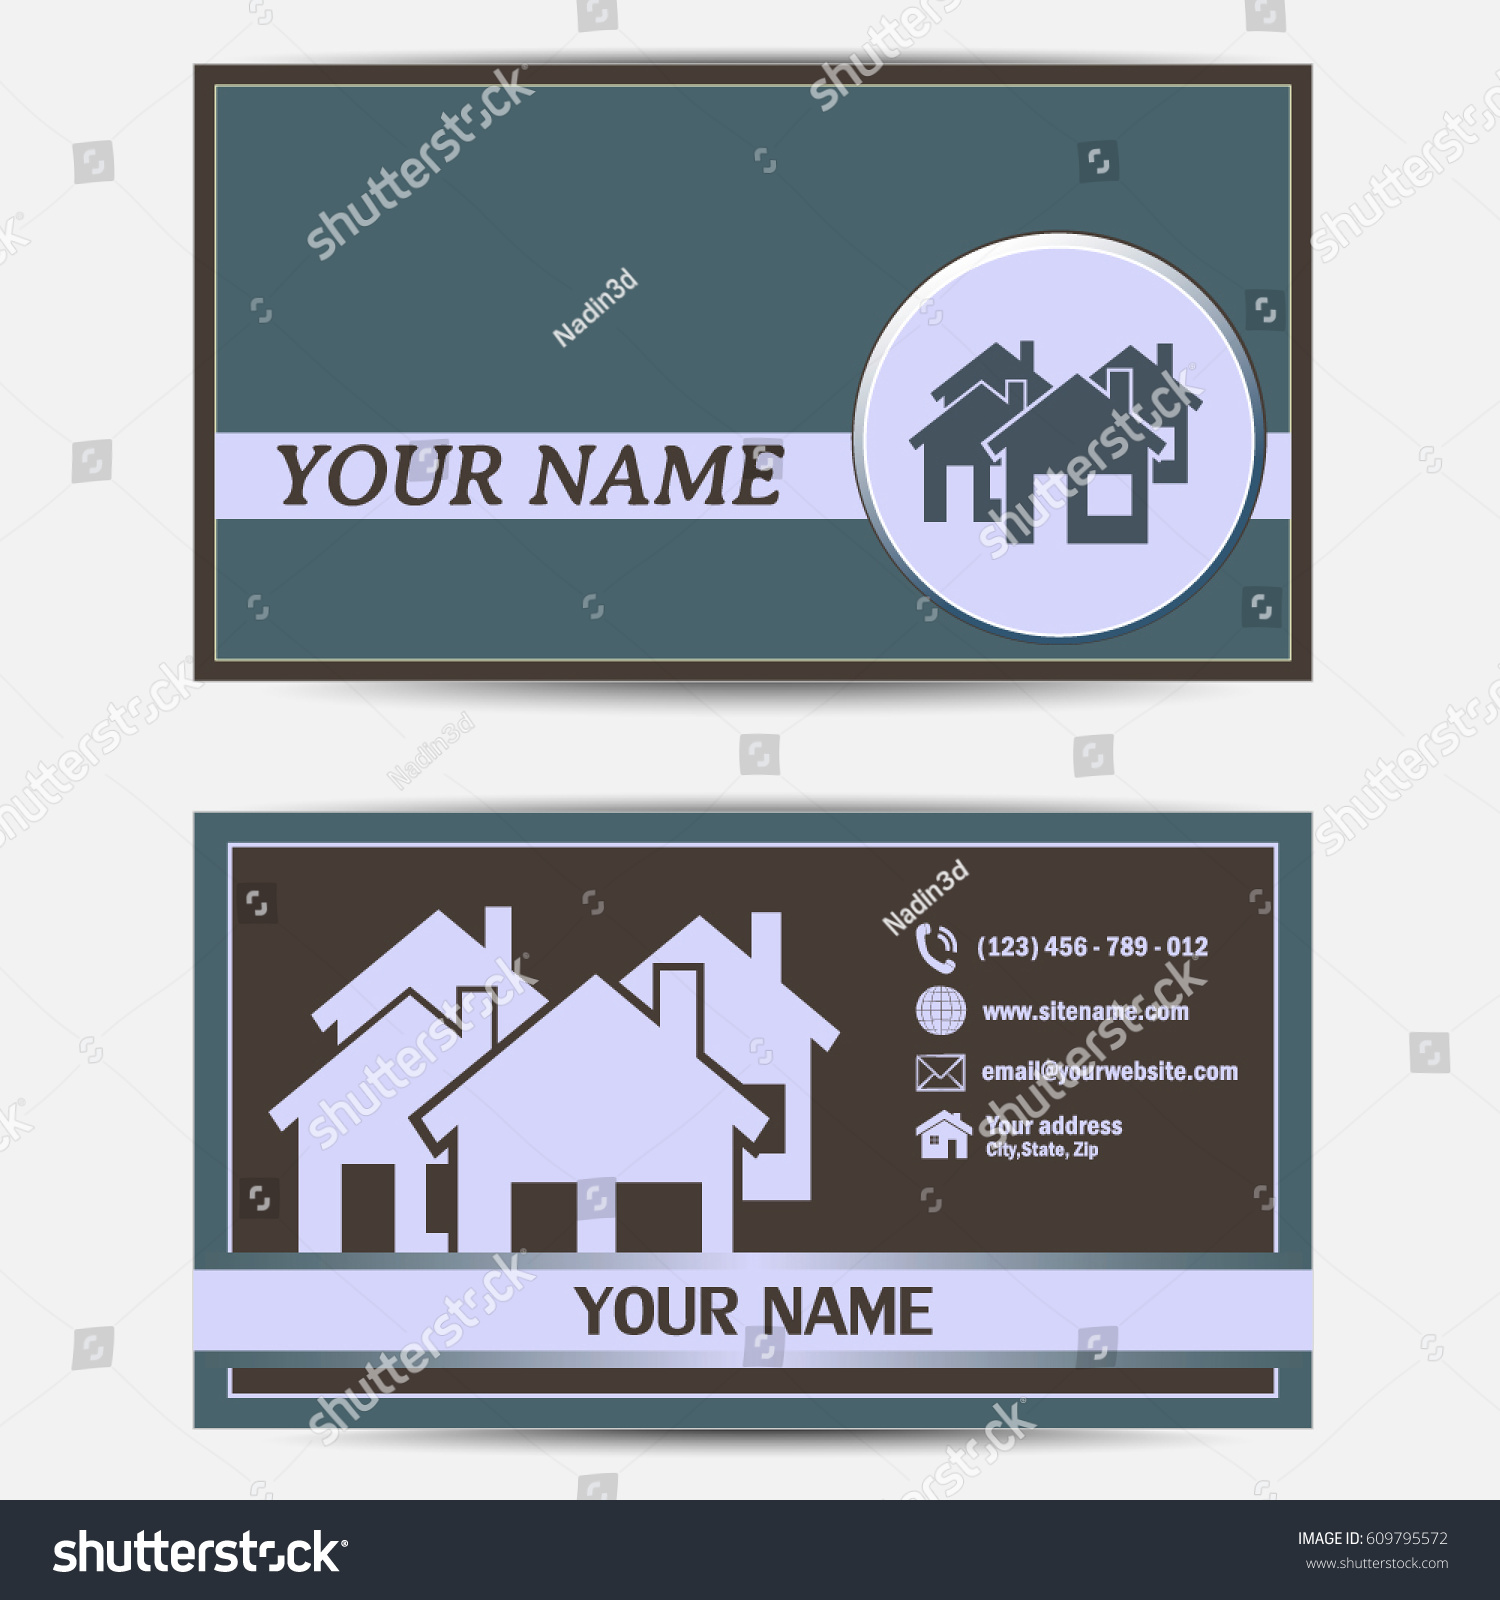 Business Cards Design Vector Illustration Group Stock Vector ...